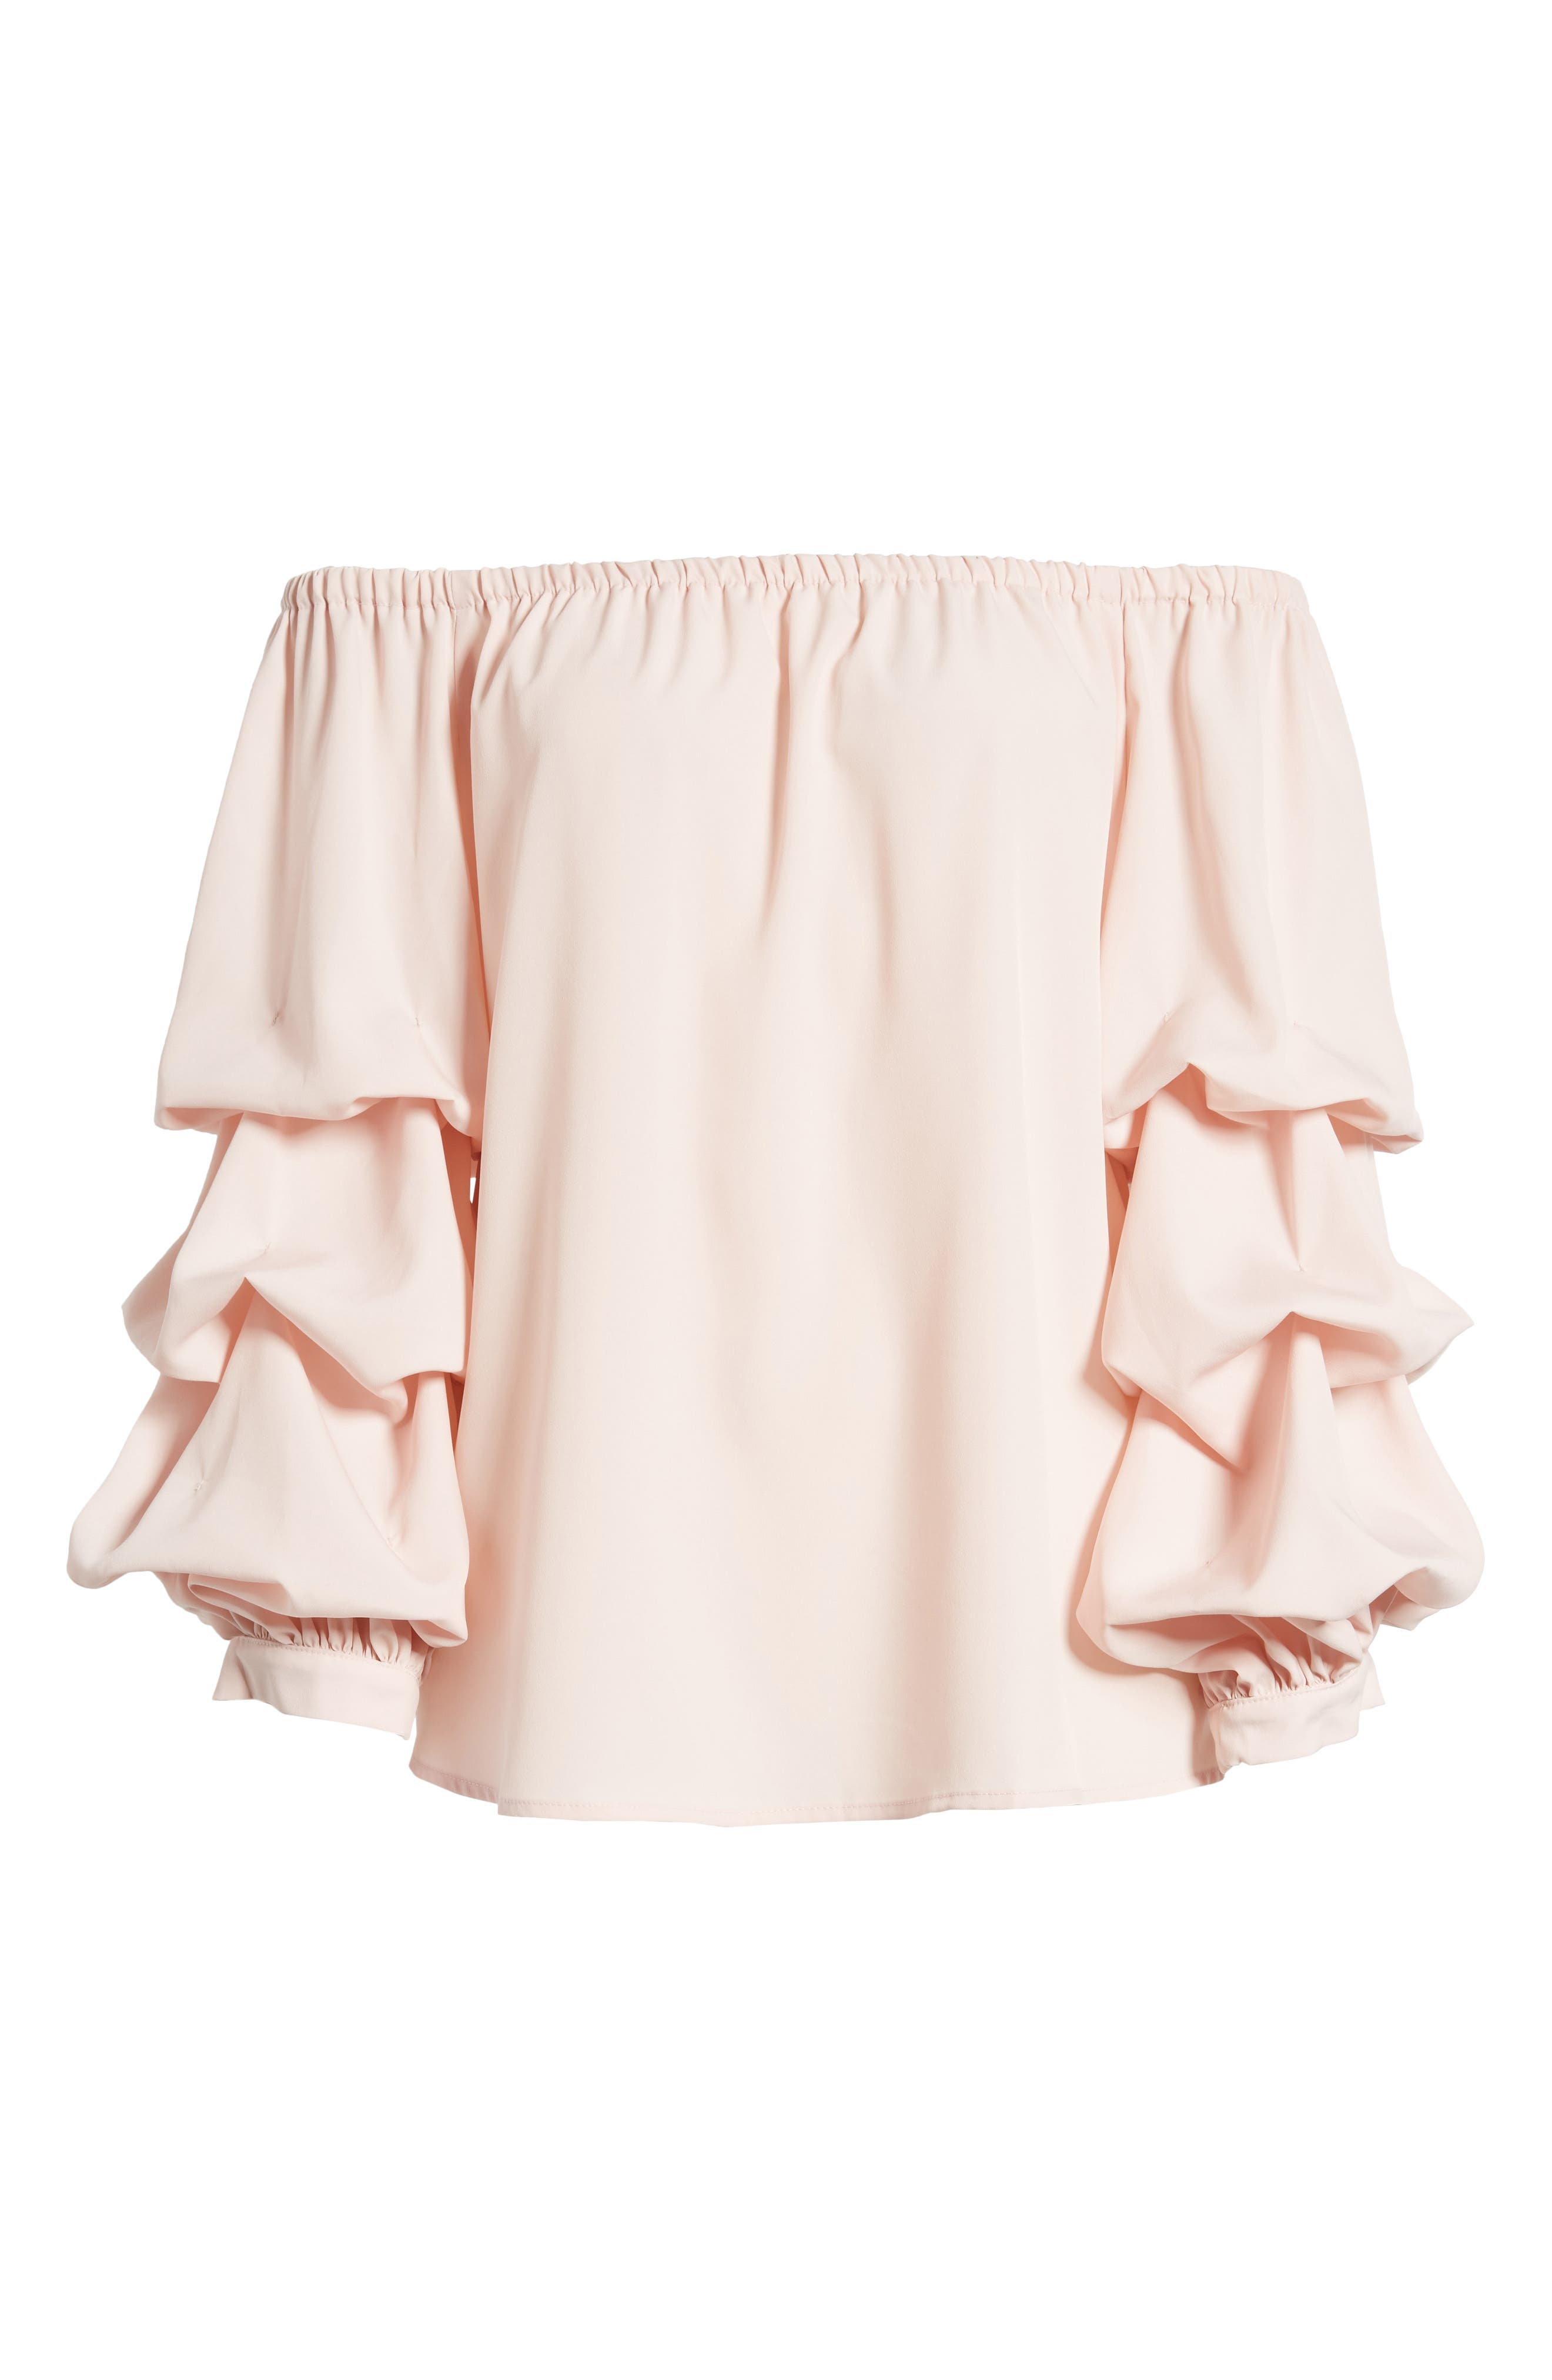 Off the Shoulder Top,                             Alternate thumbnail 6, color,                             Pink Peach